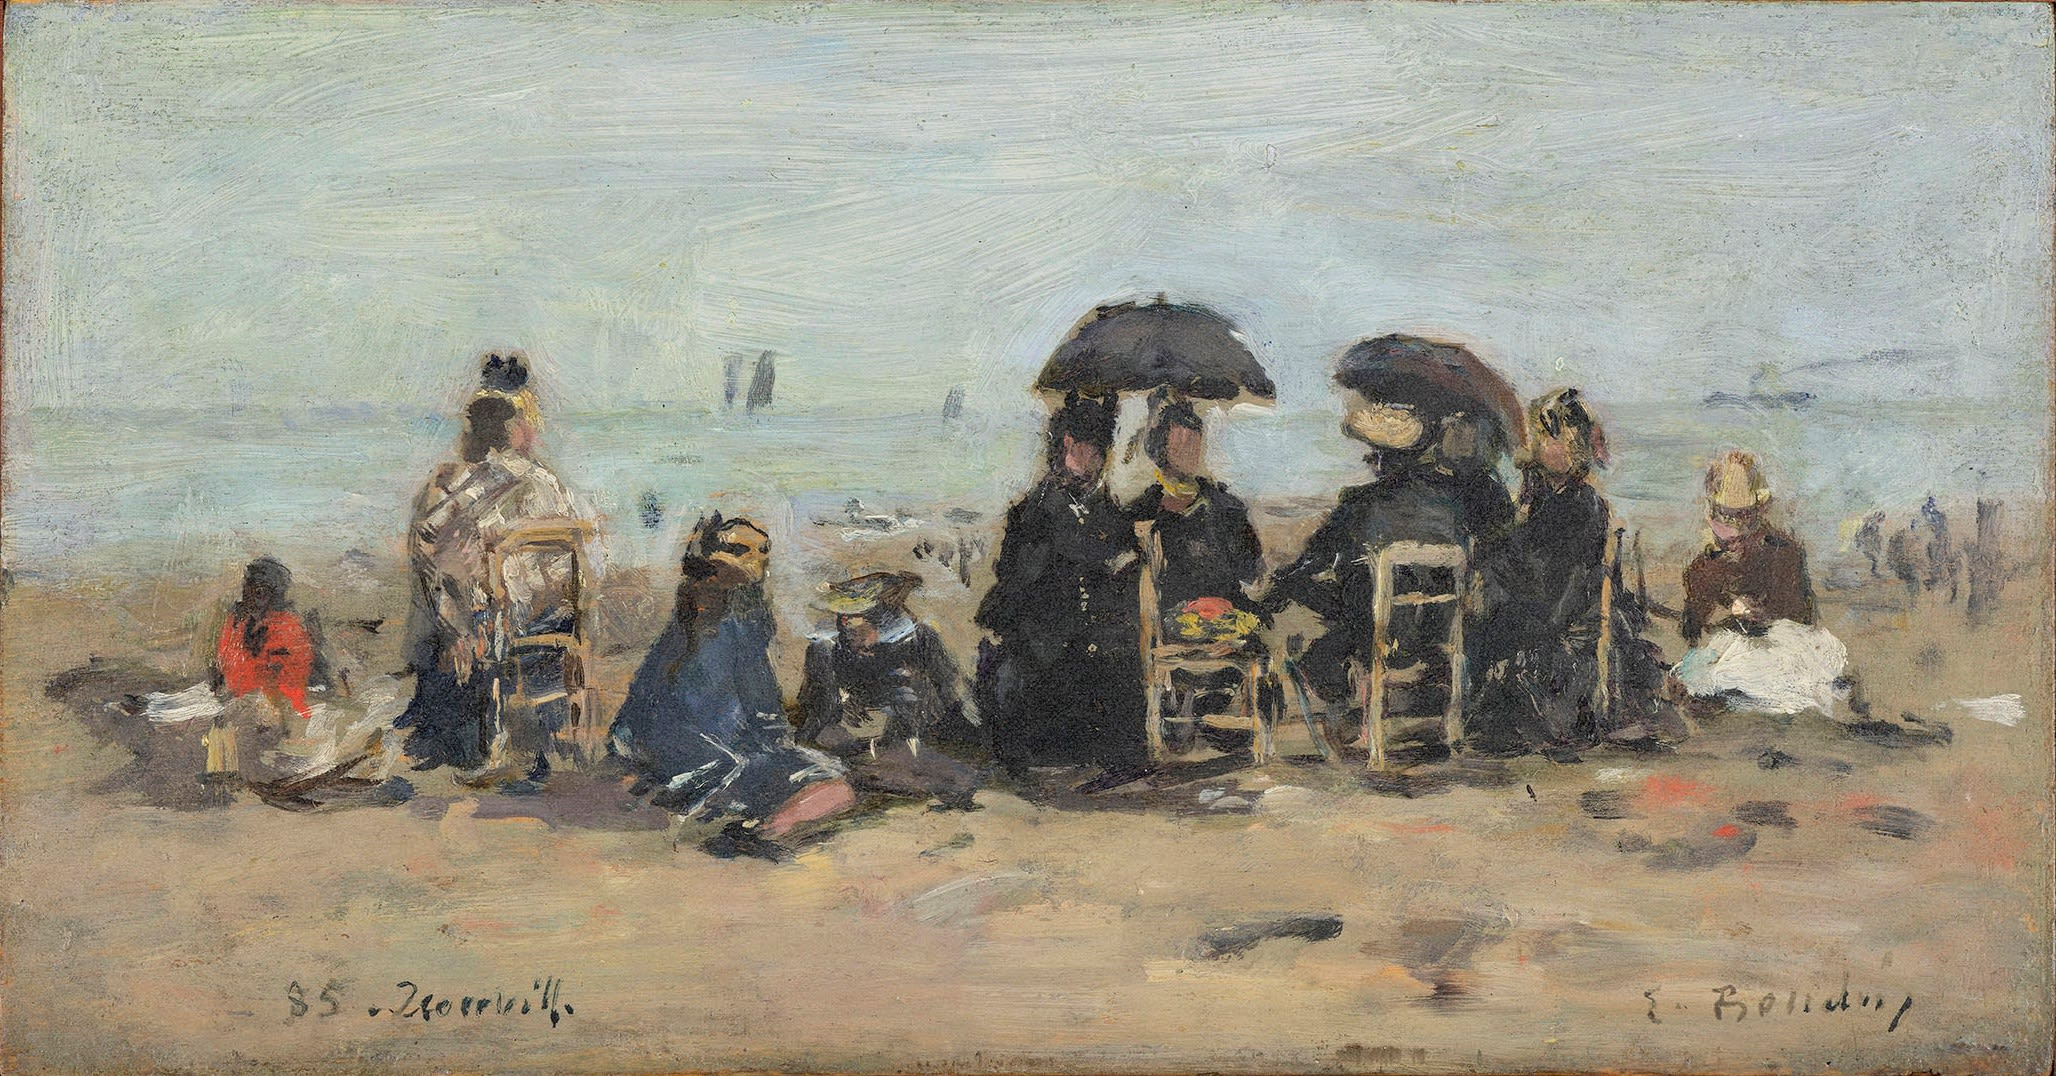 "<span class=""link fancybox-details-link""><a href=""/exhibitions/14/works/artworks_standalone9380/"">View Detail Page</a></span><div class=""signed_and_dated"">Signed lower right ""E.Boudin"" and inscribed lower left ""85 Trouville""</div>